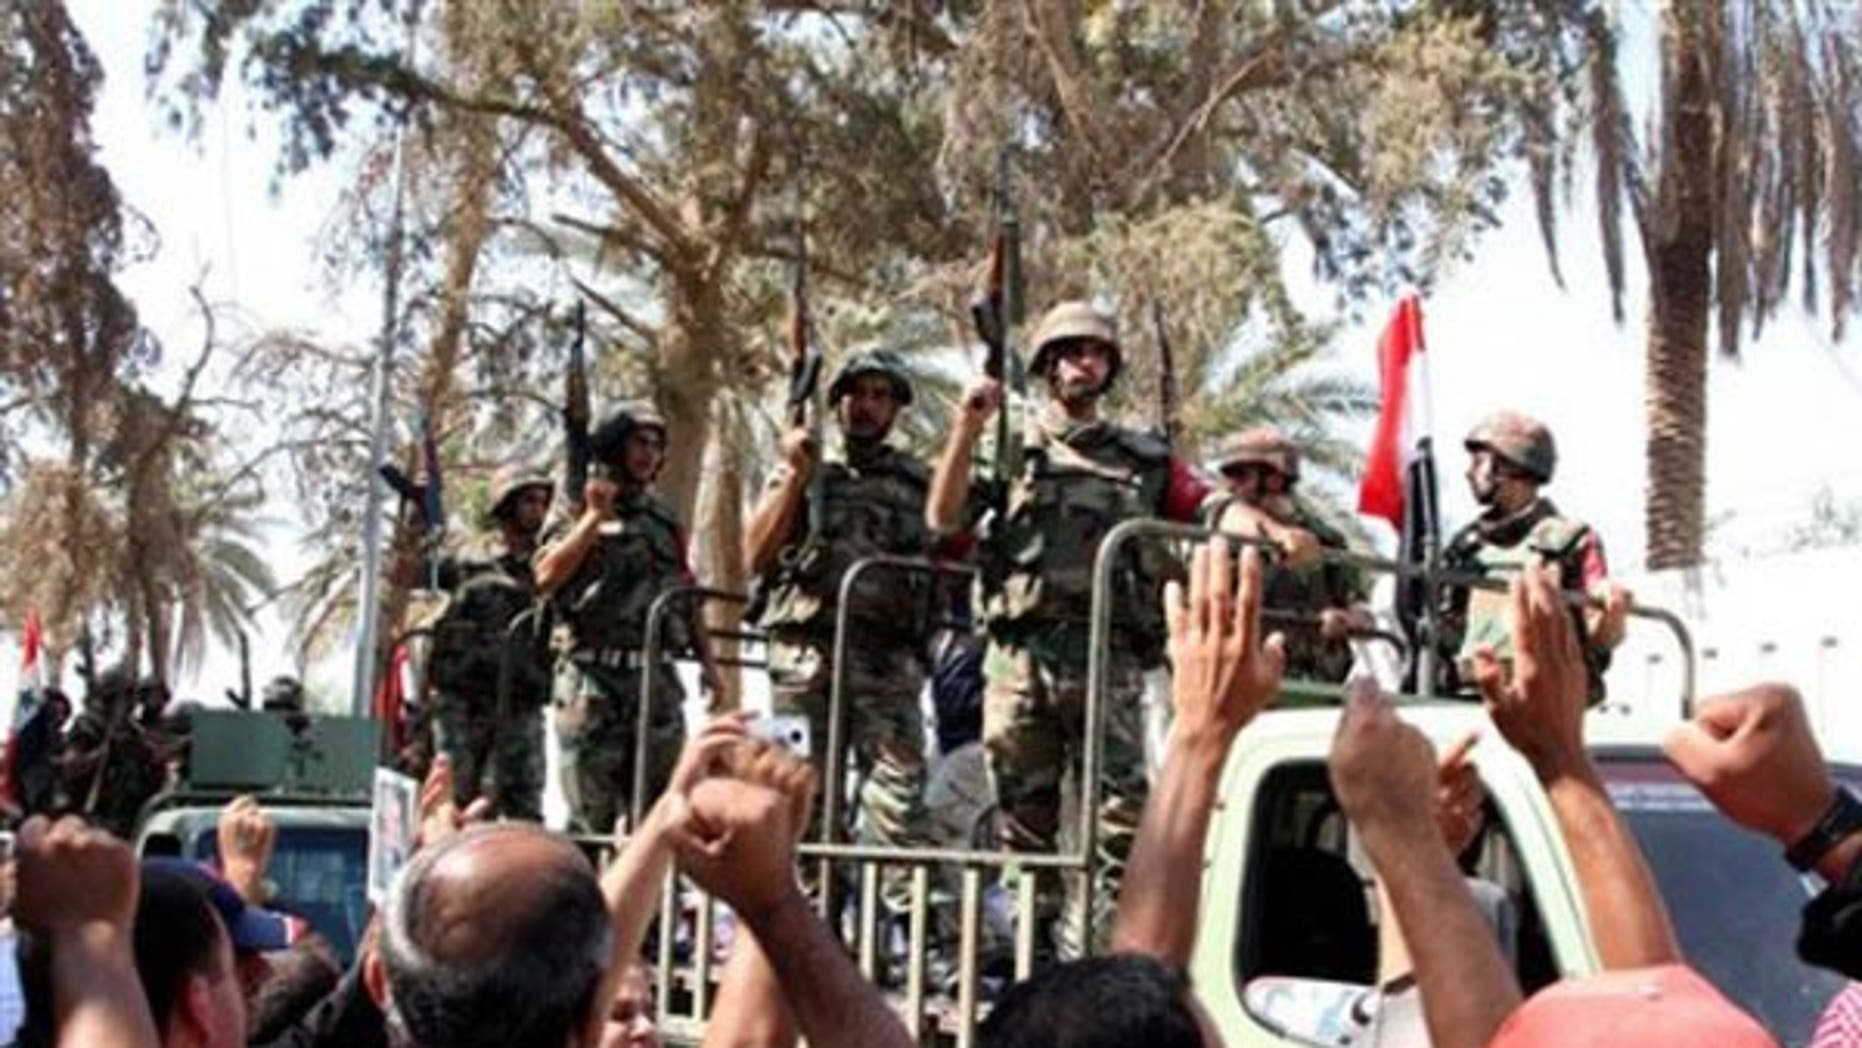 In this photo taken on a government-organized tour, residents cheer Syrian soldiers in Deir el-Zour in 2011.